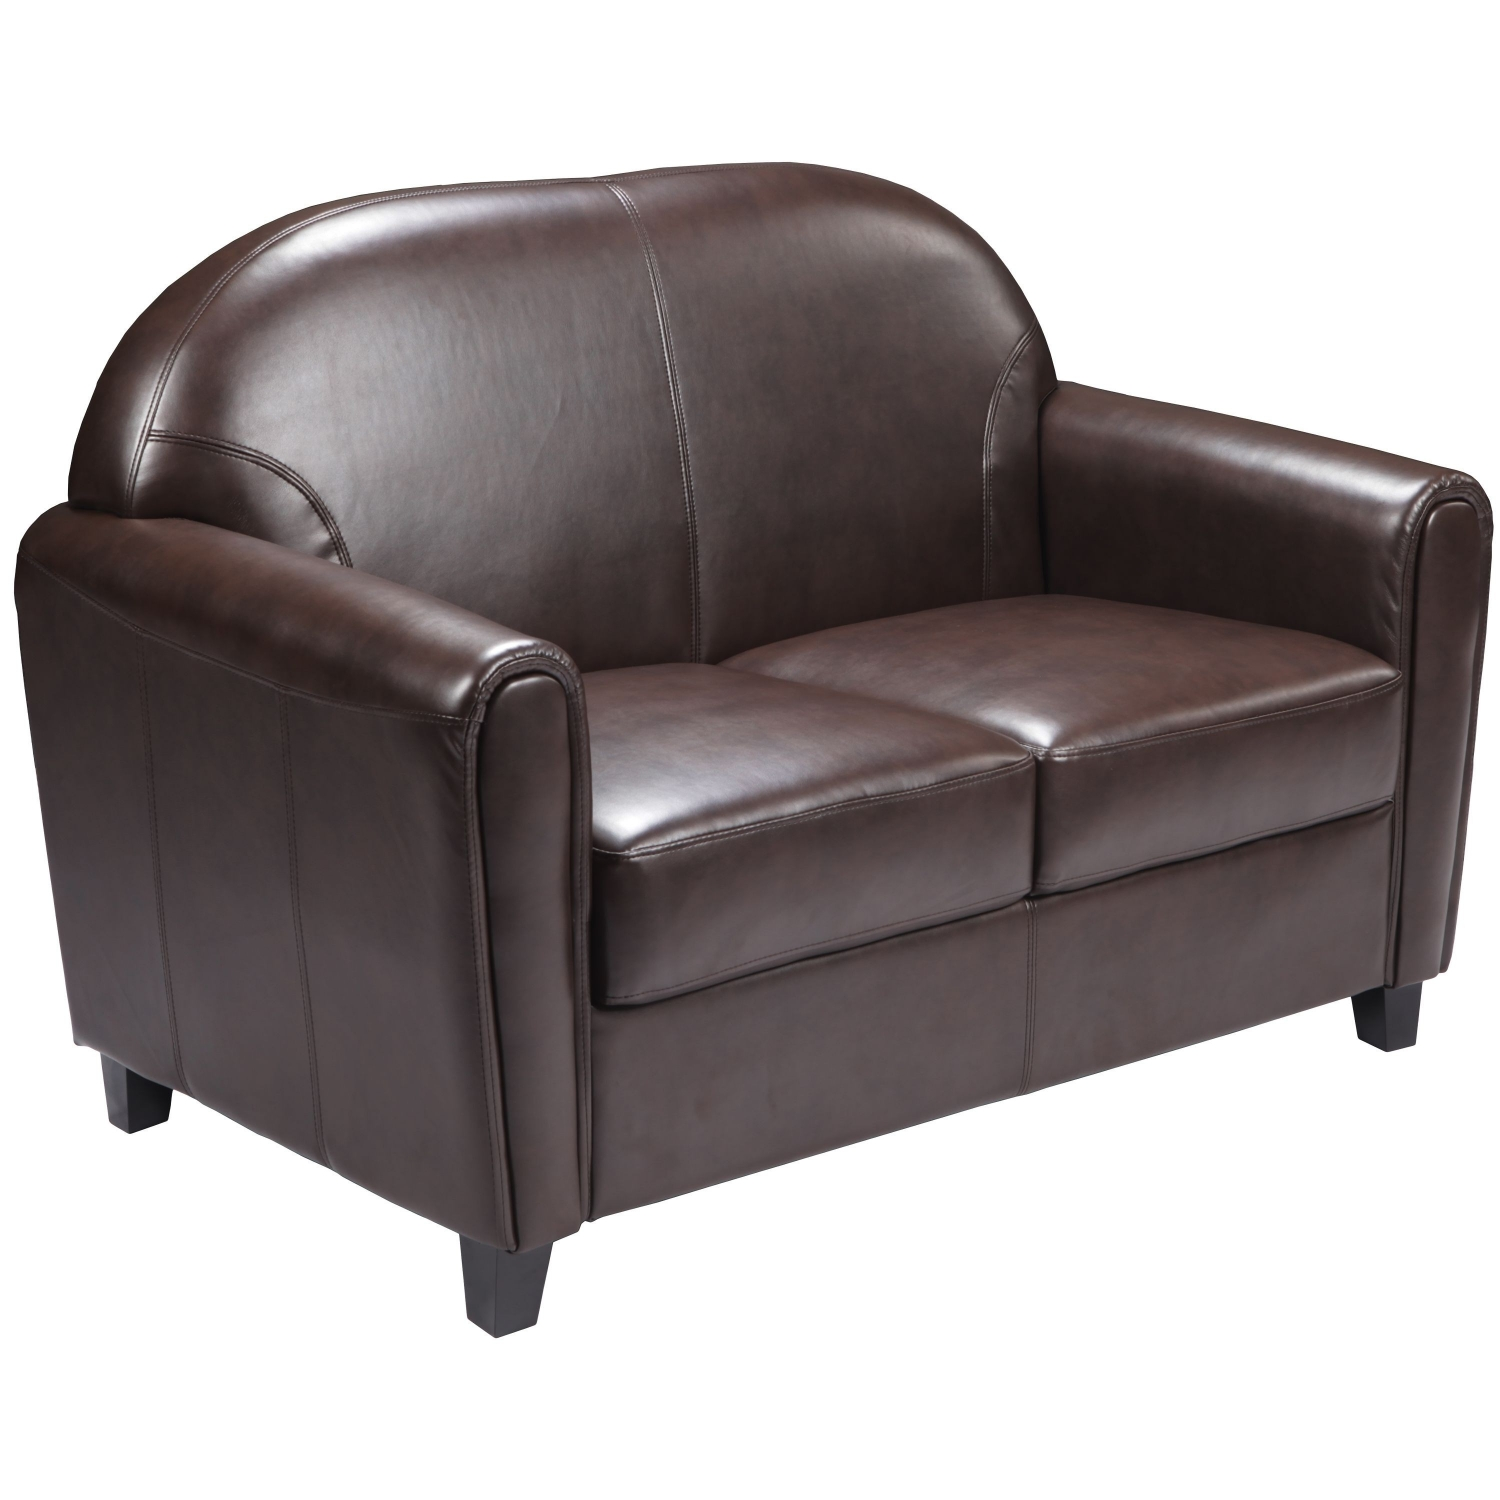 Flash Furniture BT-828-2-BN-GG HERCULES Envoy Series Brown Leather Love Seat